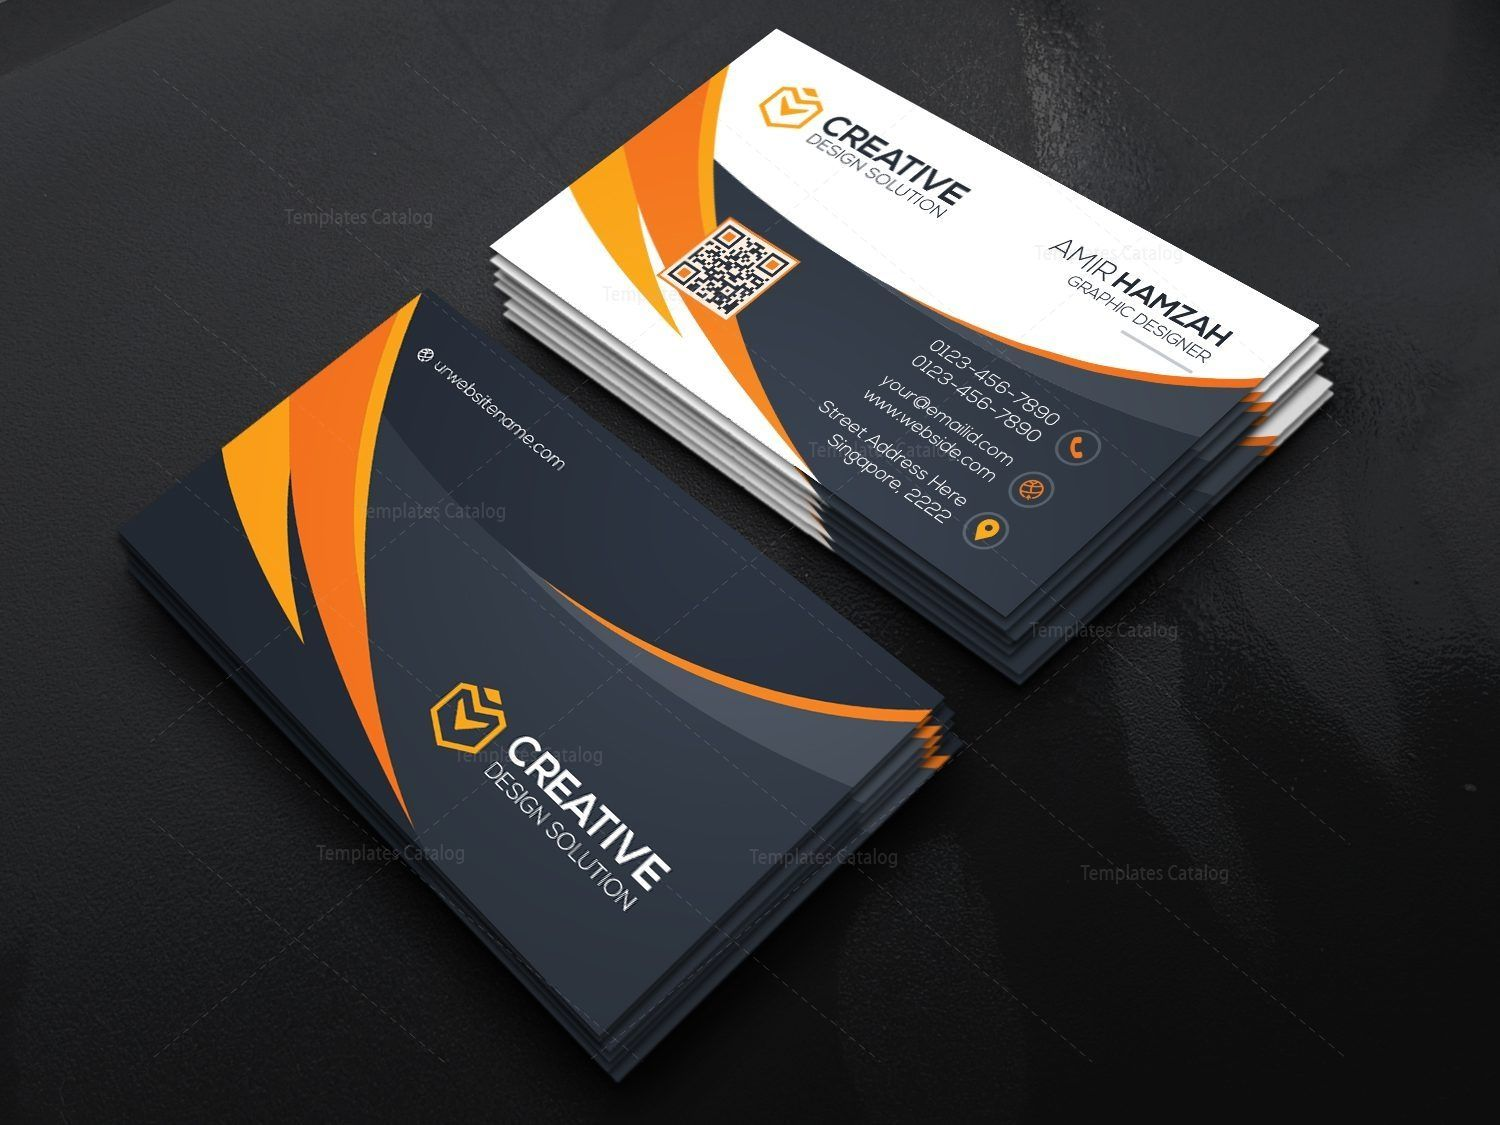 Stylish Psd Business Card Templates Graphic Templates Business Card Psd Stylish Business Cards Corporate Business Card